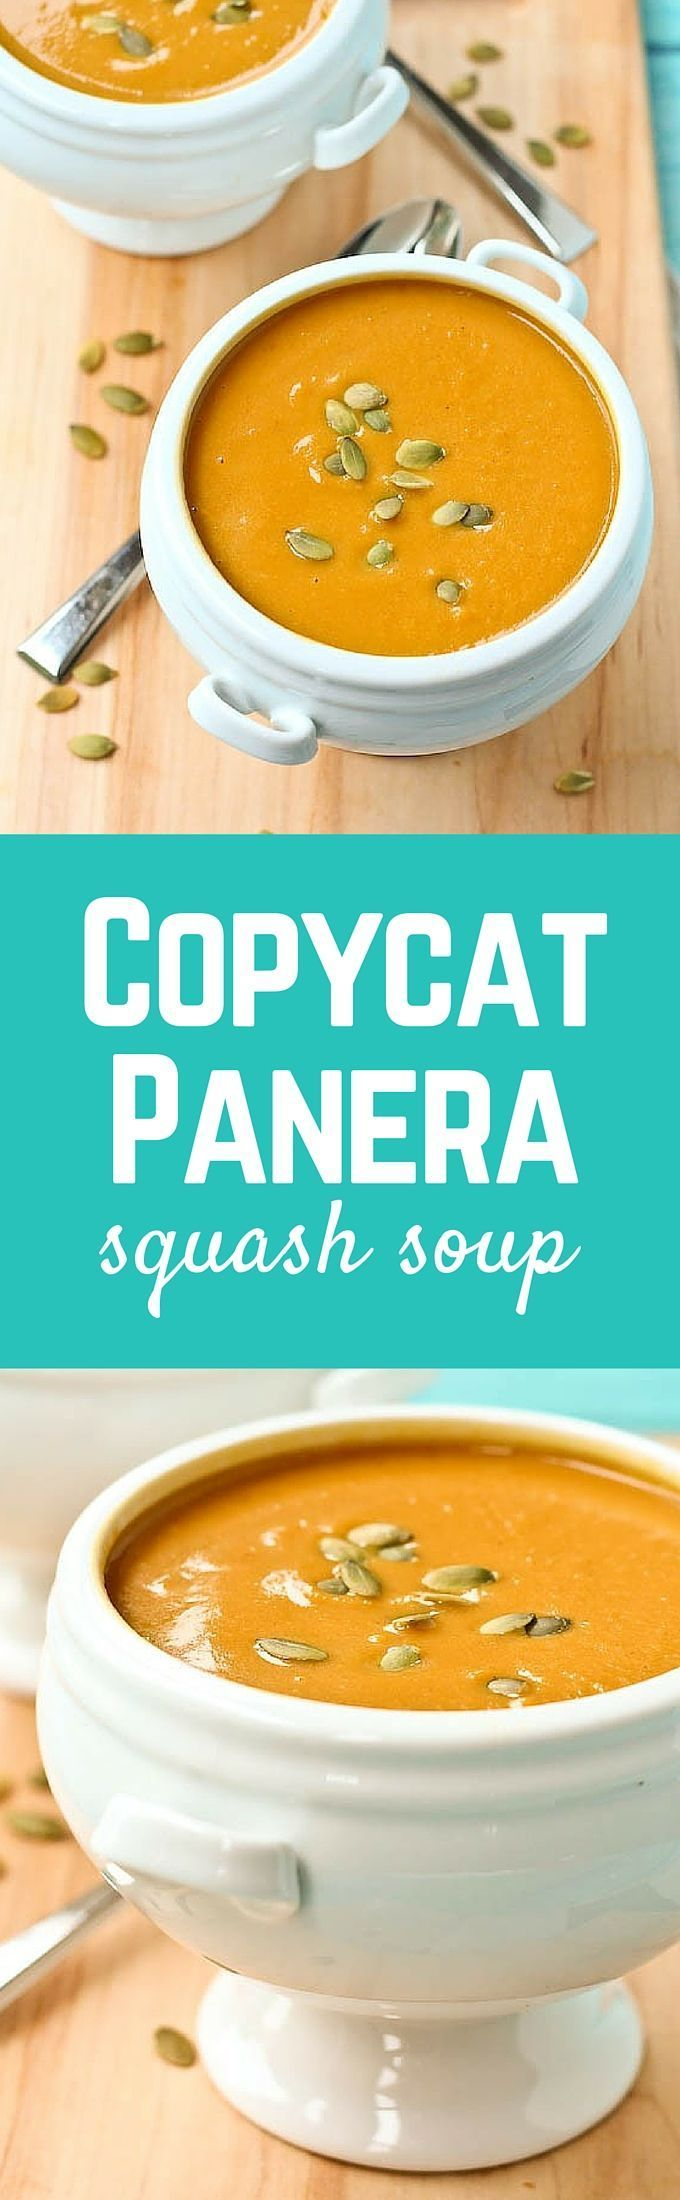 920 best Soup Recipes images on Pinterest | One pot, Kitchens and ...